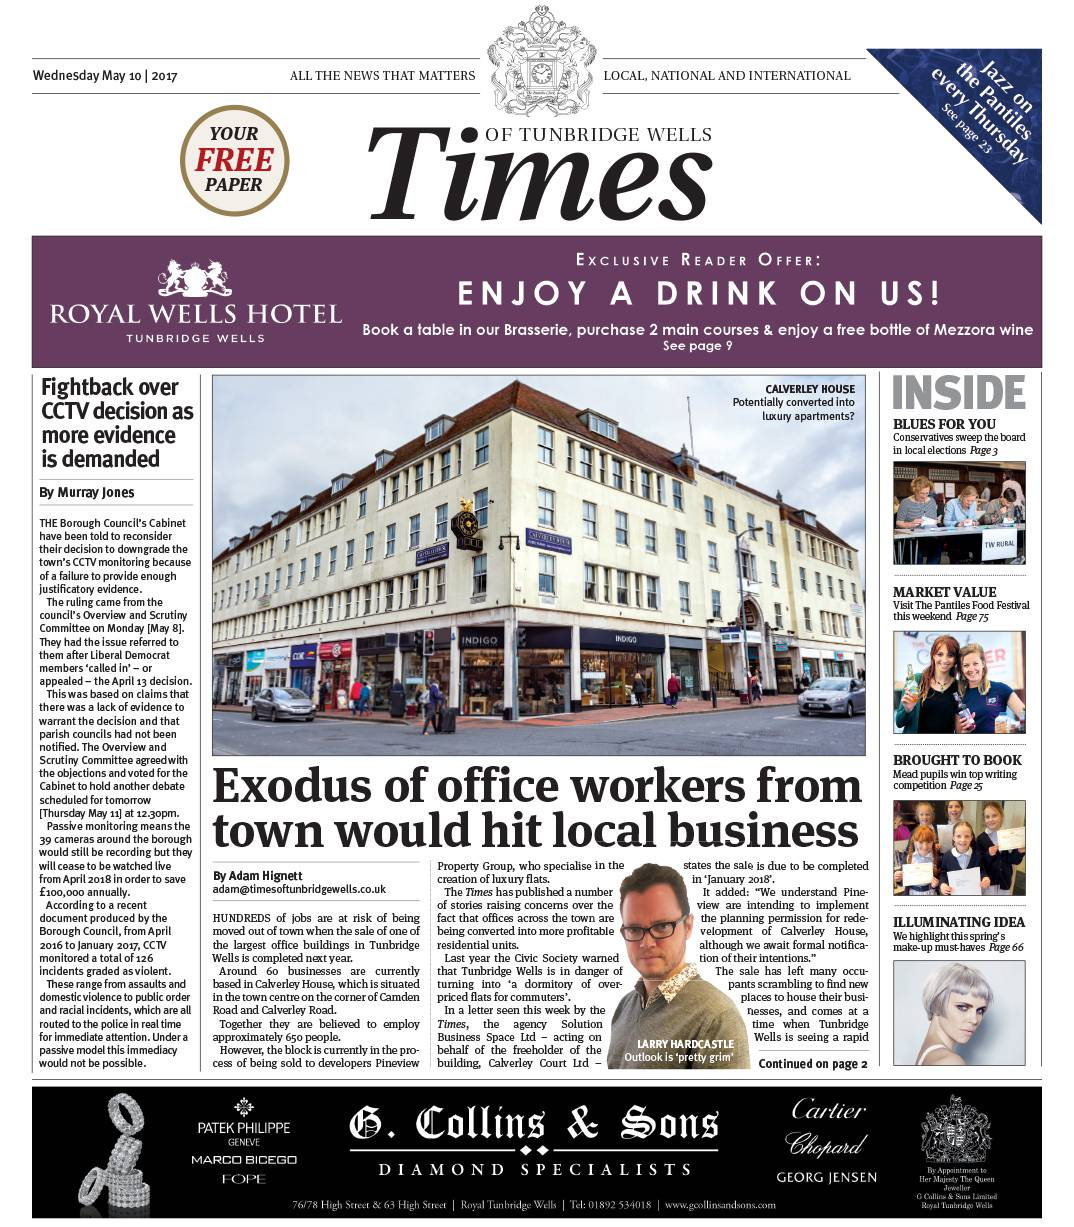 Read the Times of Tunbridge Wells 10th May 2017